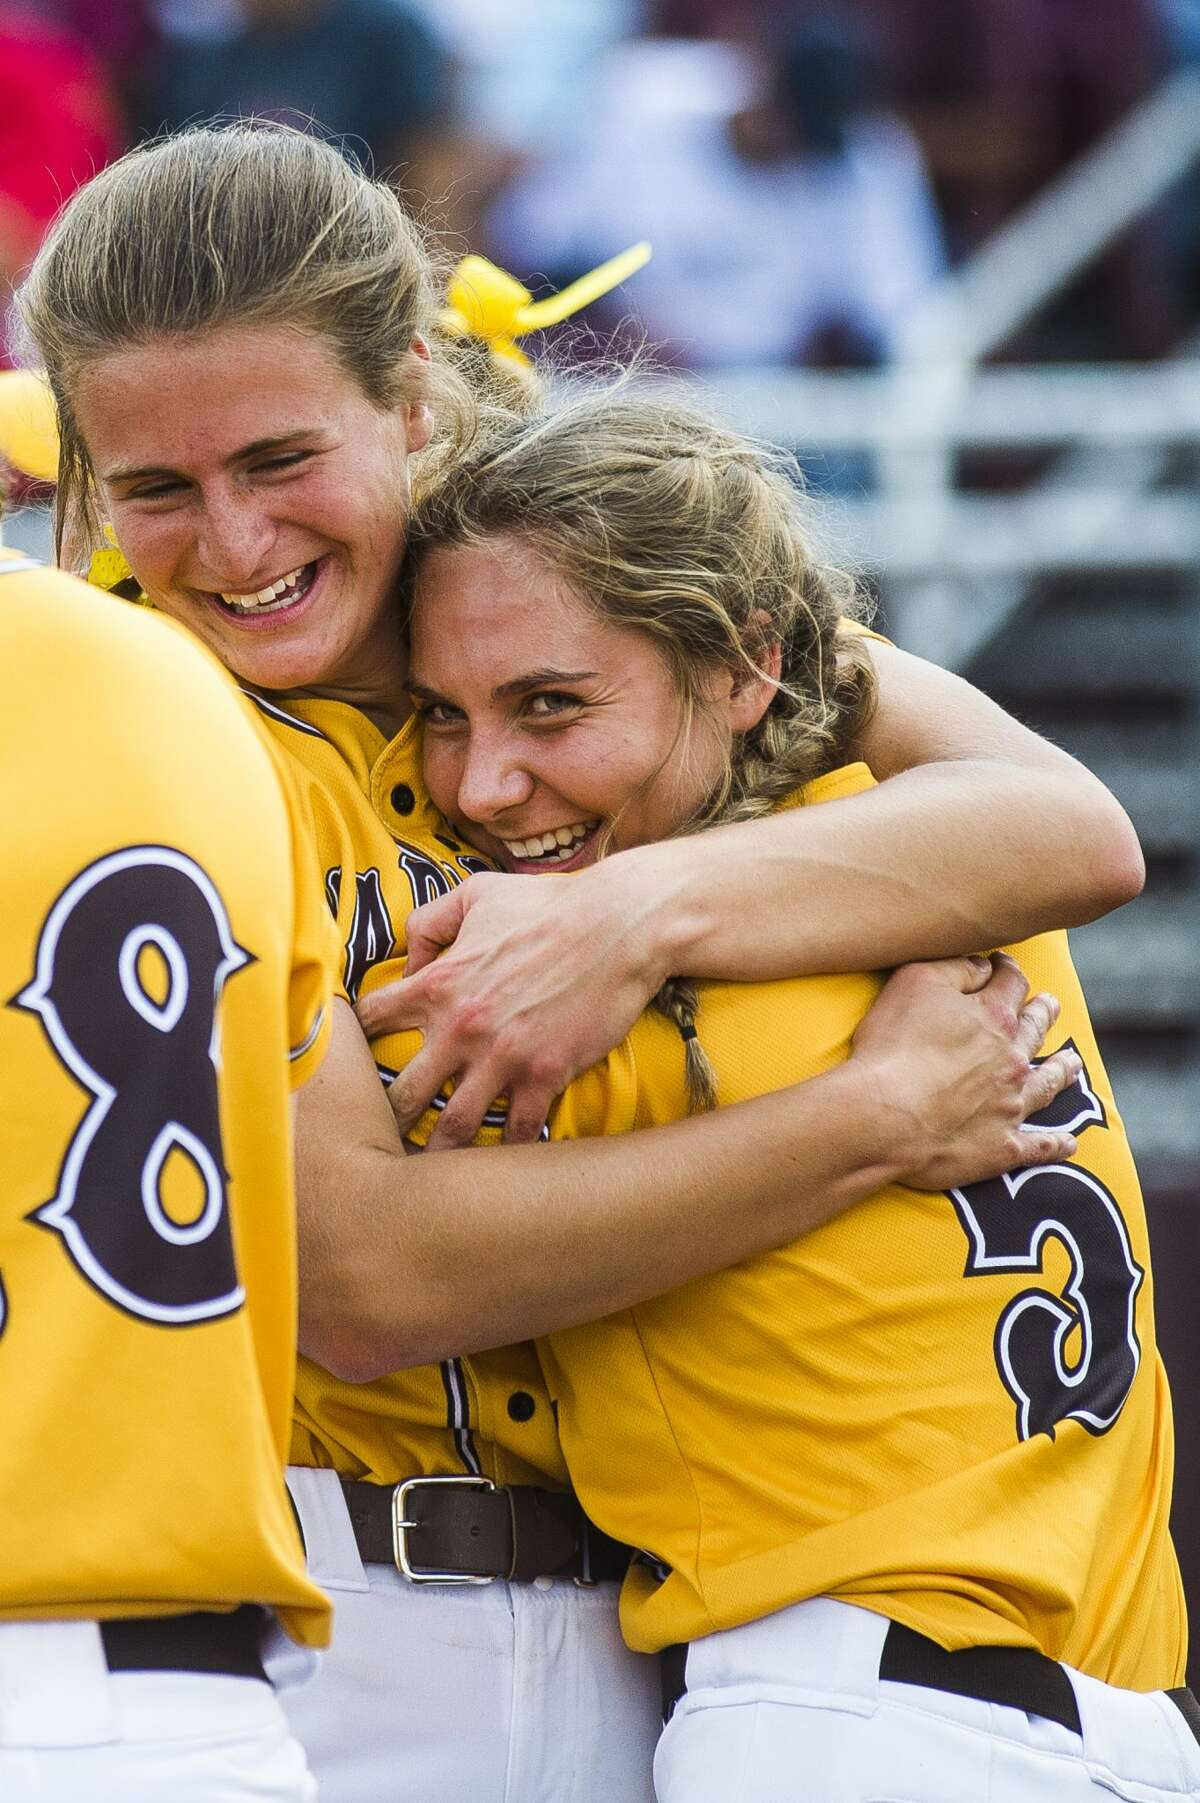 Bay City Western players celebrate after their Division 1 state quarterfinals victory over Lowell on Tuesday, June 11, 2019 at Central Michigan University. (Katy Kildee/kkildee@mdn.net)